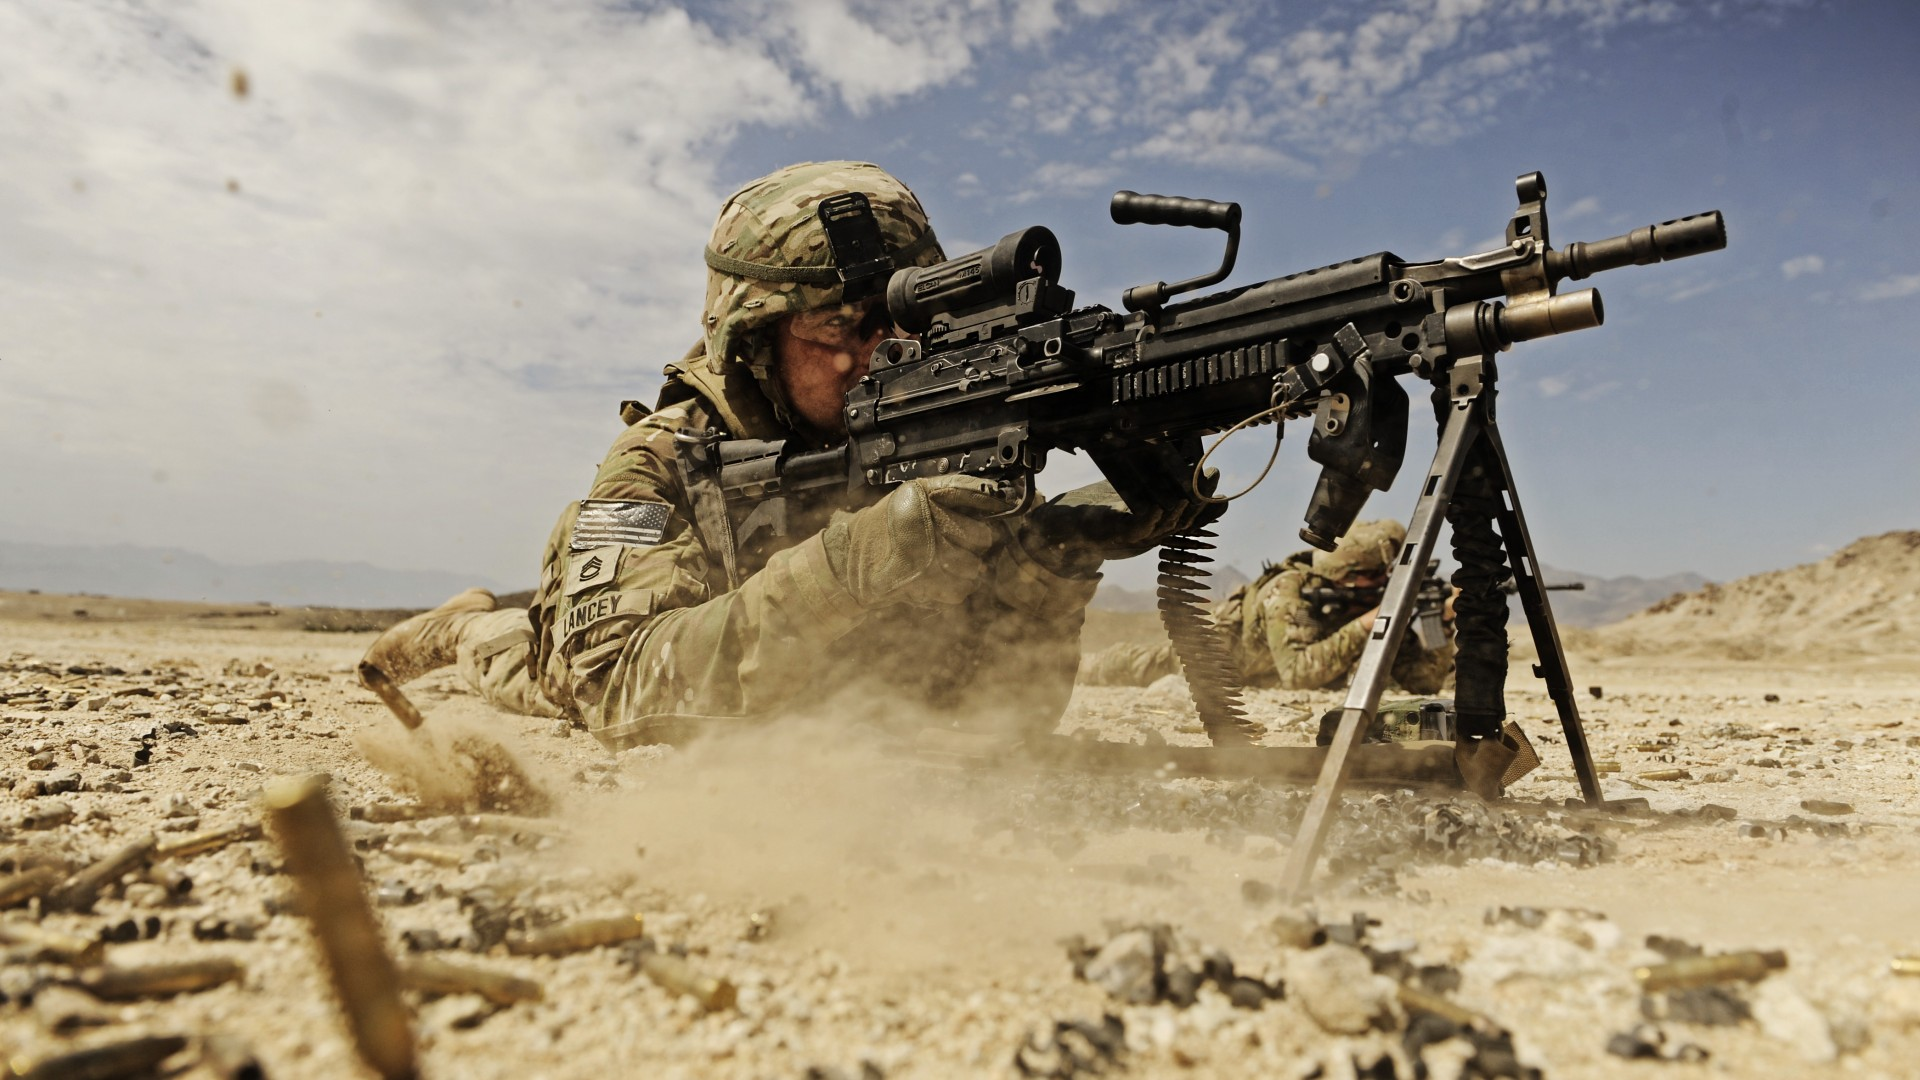 soldier, M249 LMG machine gun U.S. Army, firing, dust, sand (horizontal)